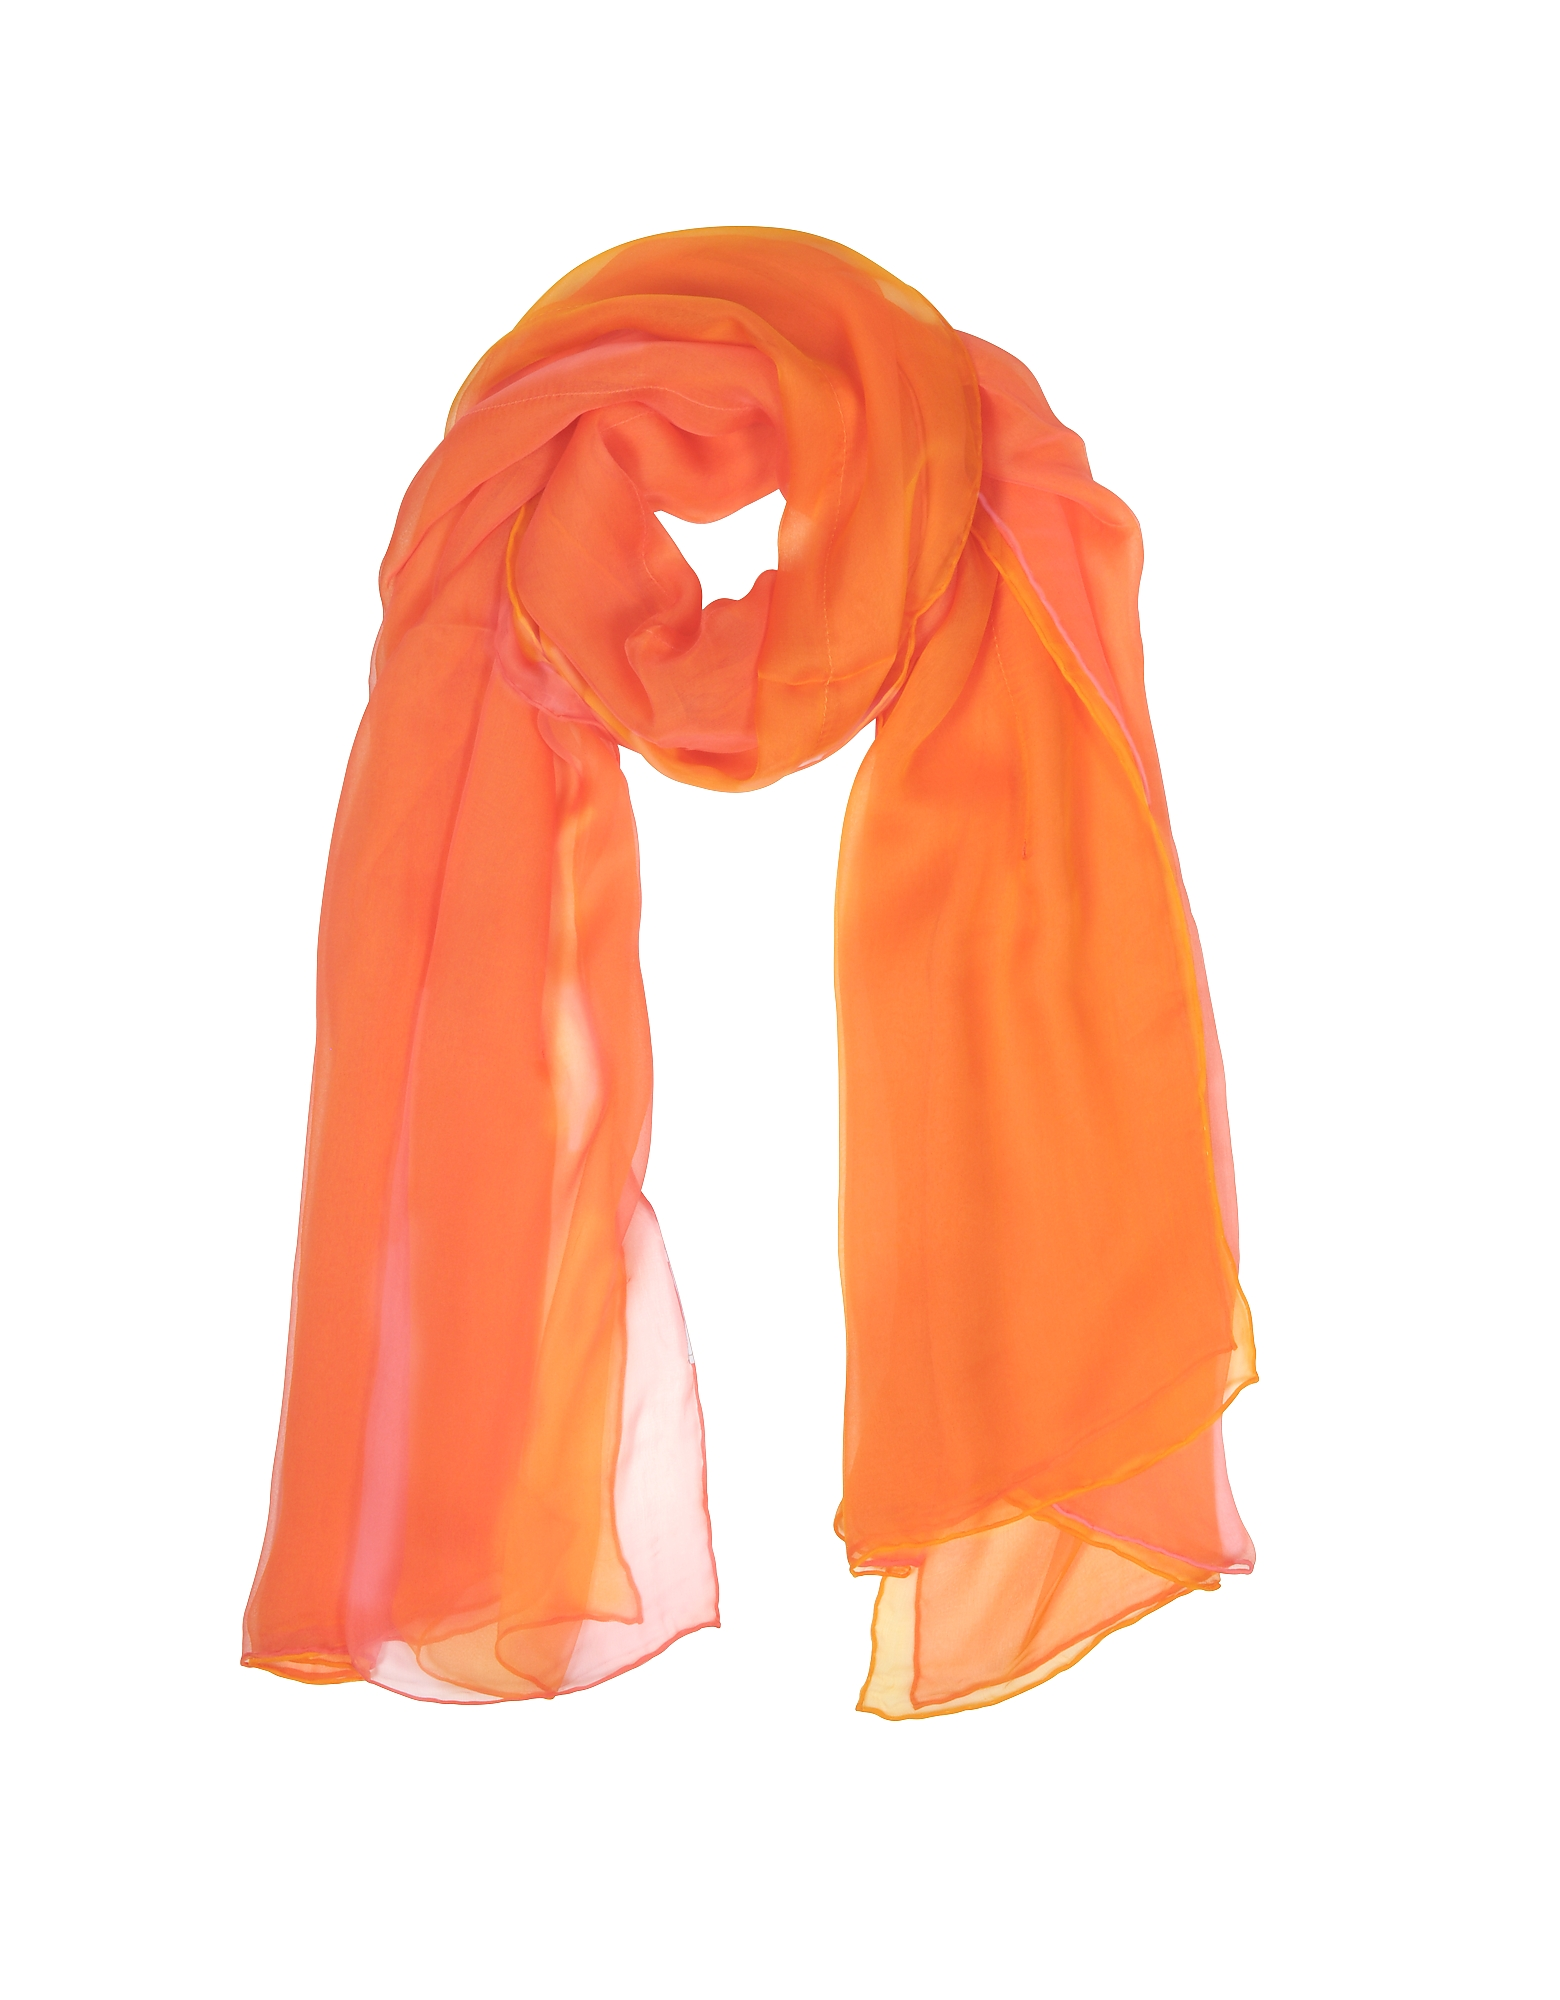 Image of Laura Biagiotti Designer Scarves, Double Chiffon Silk Stole